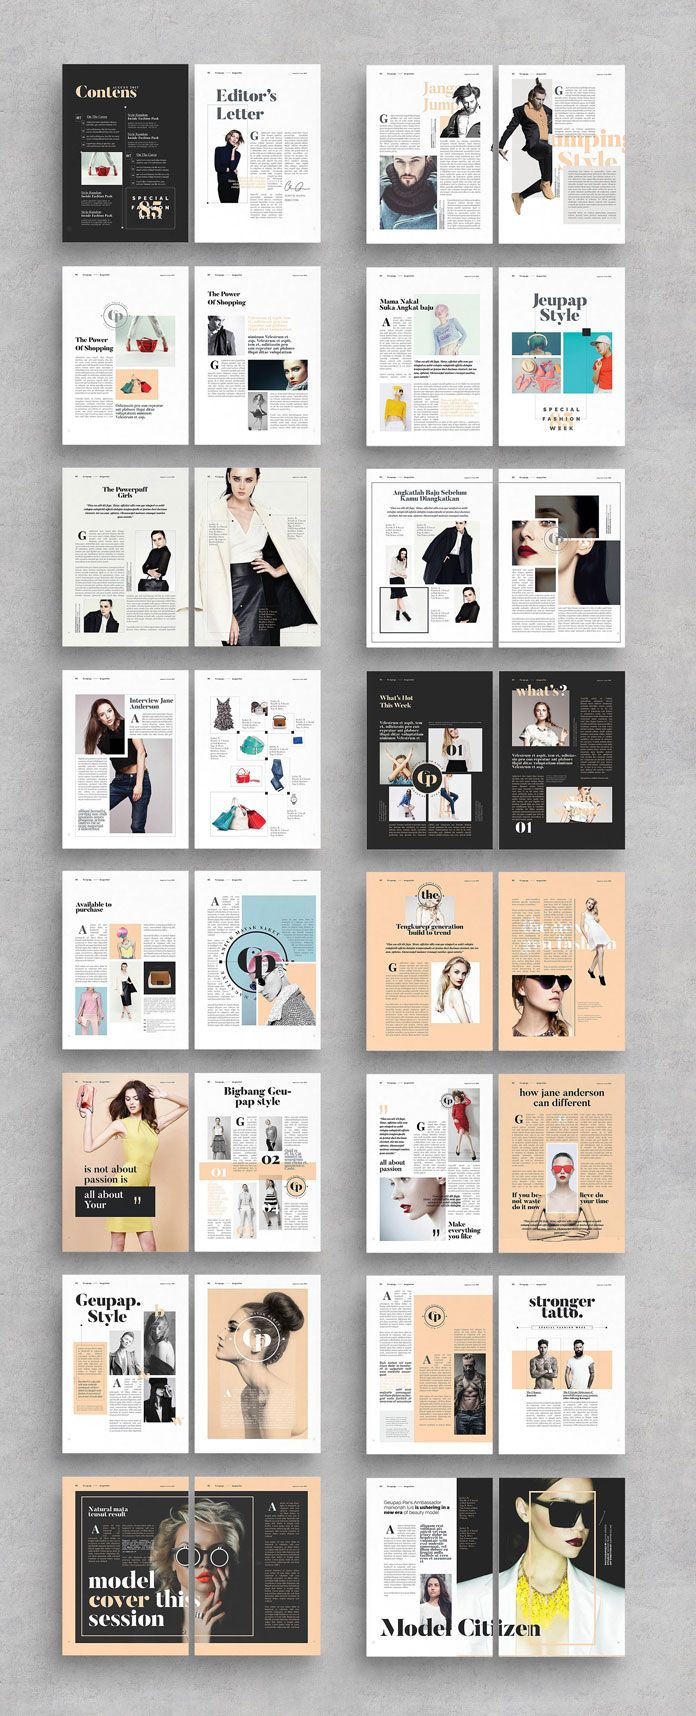 Adobe Indesign Magazine Template From Alfianbrand Design